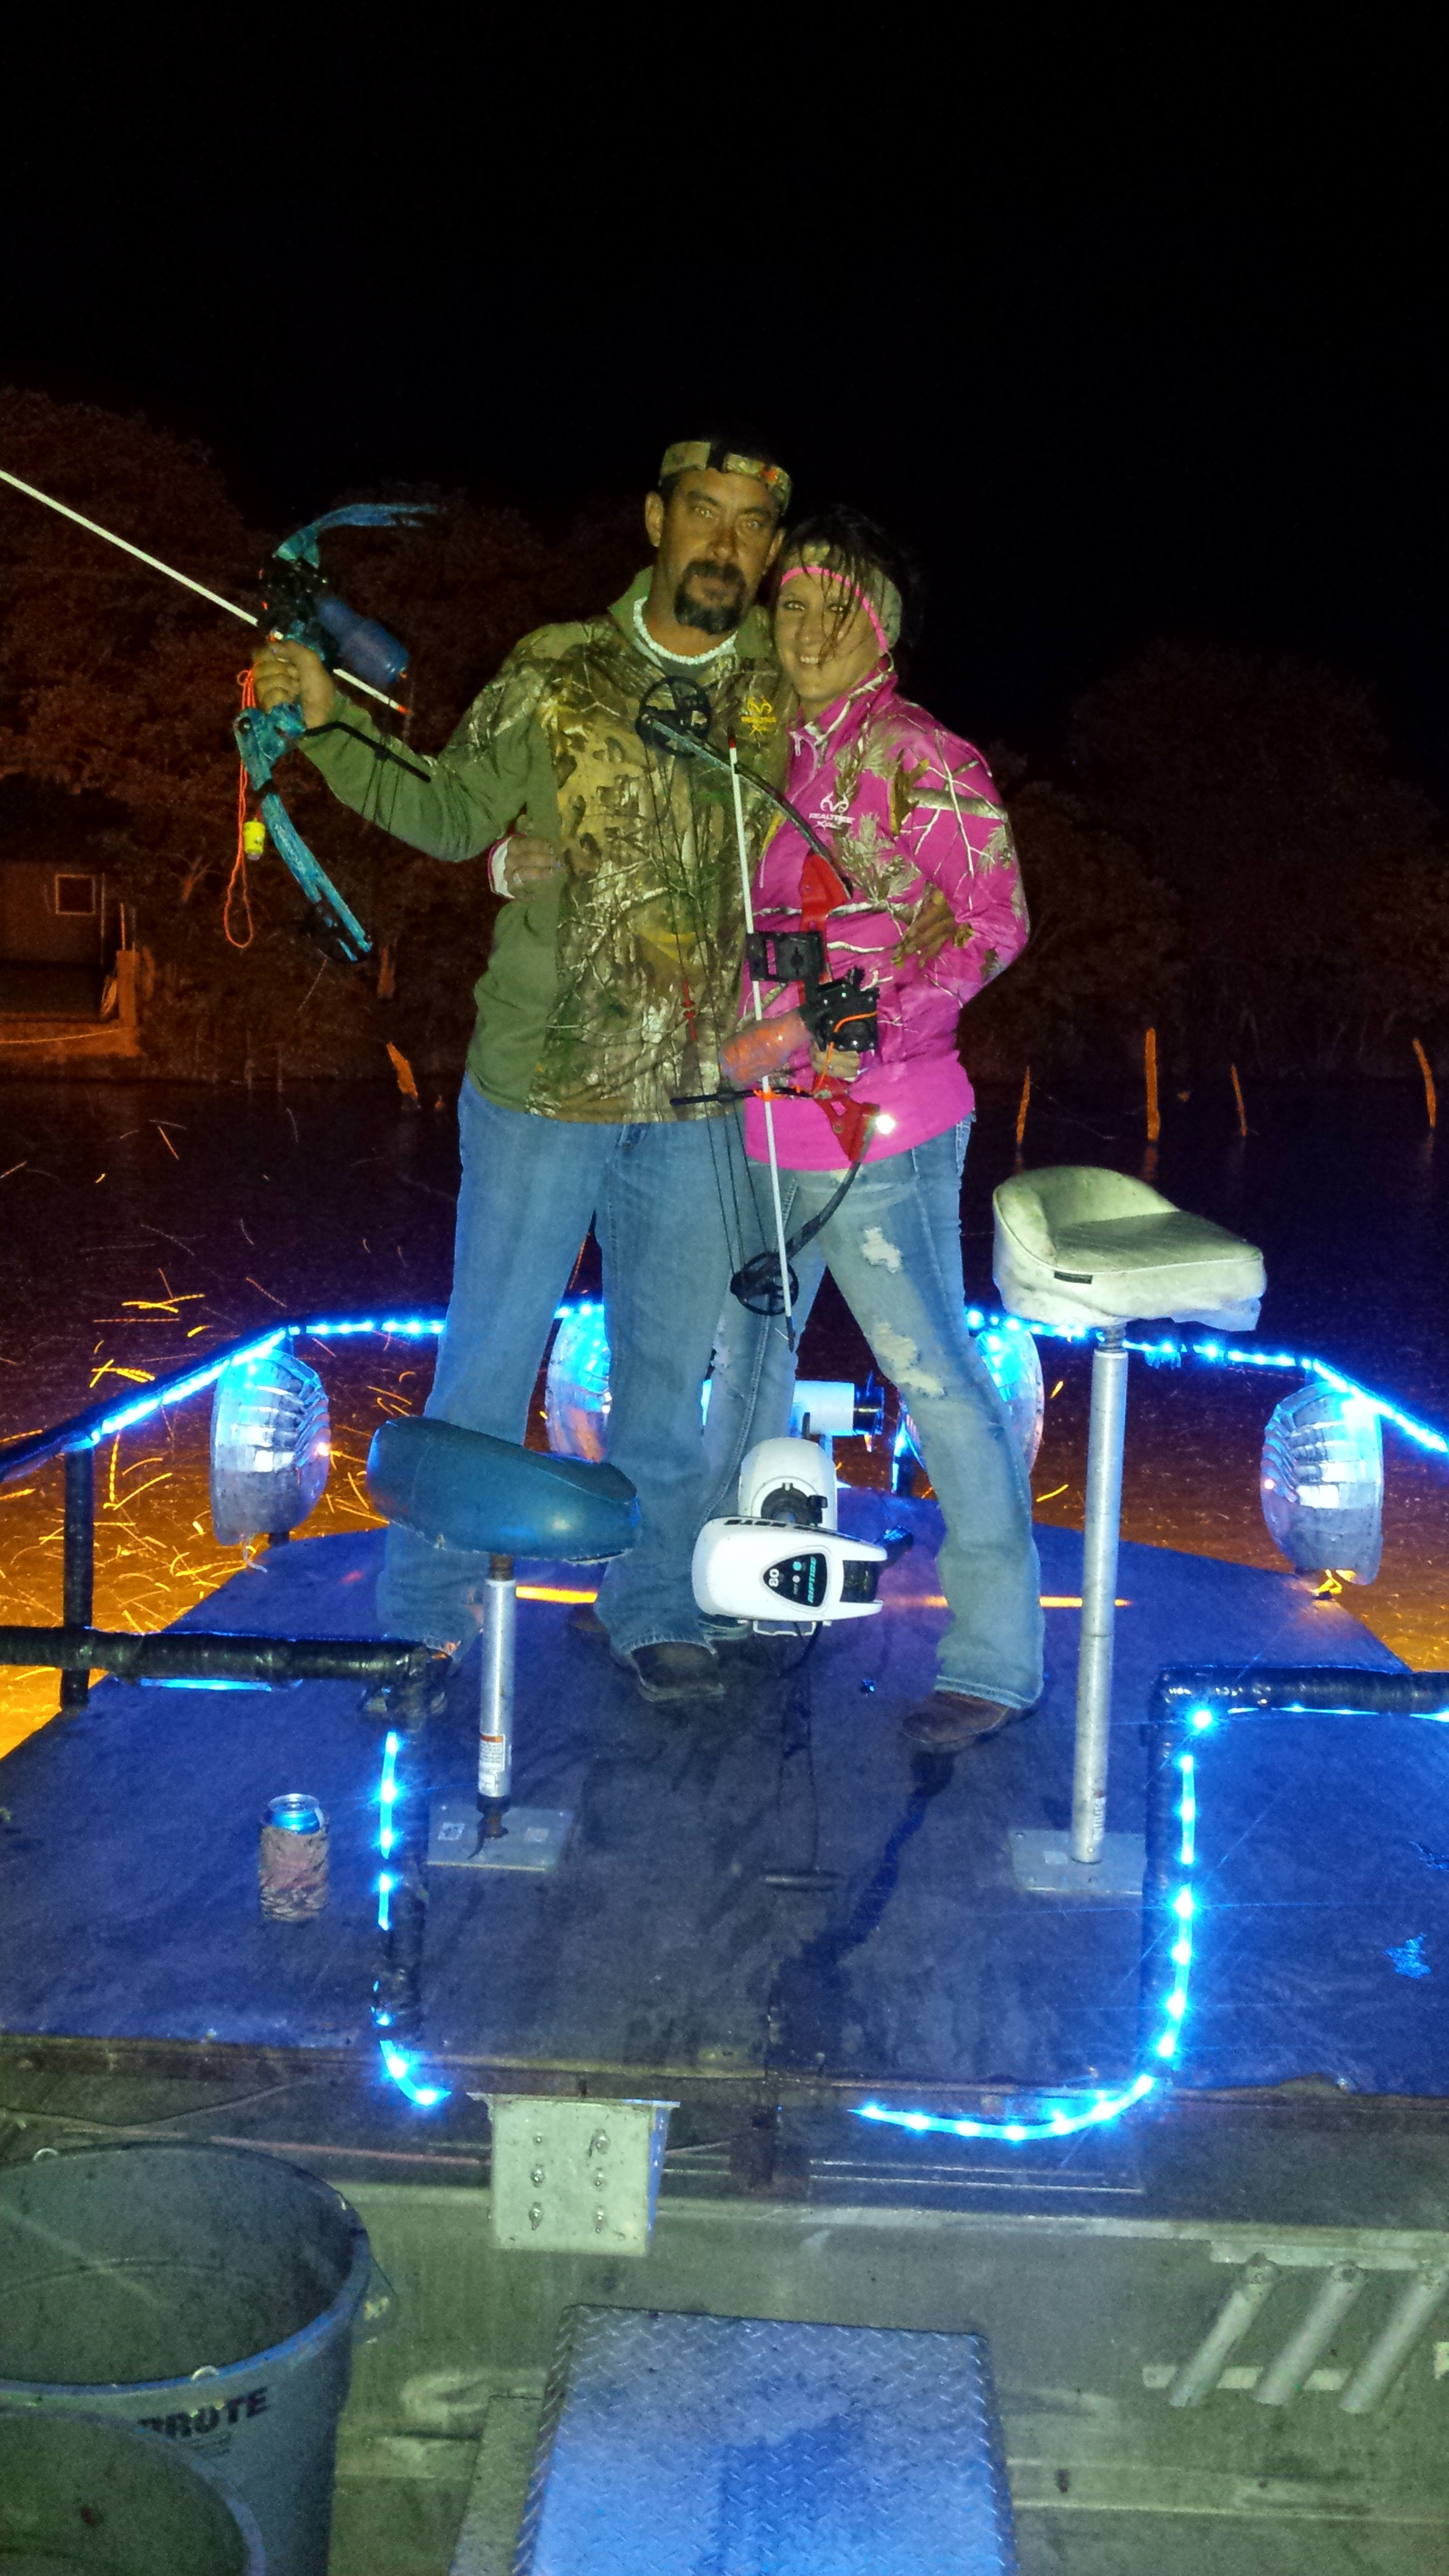 Bonnie and clyde bow fishing on lake lbj game fish for Bow fishing games